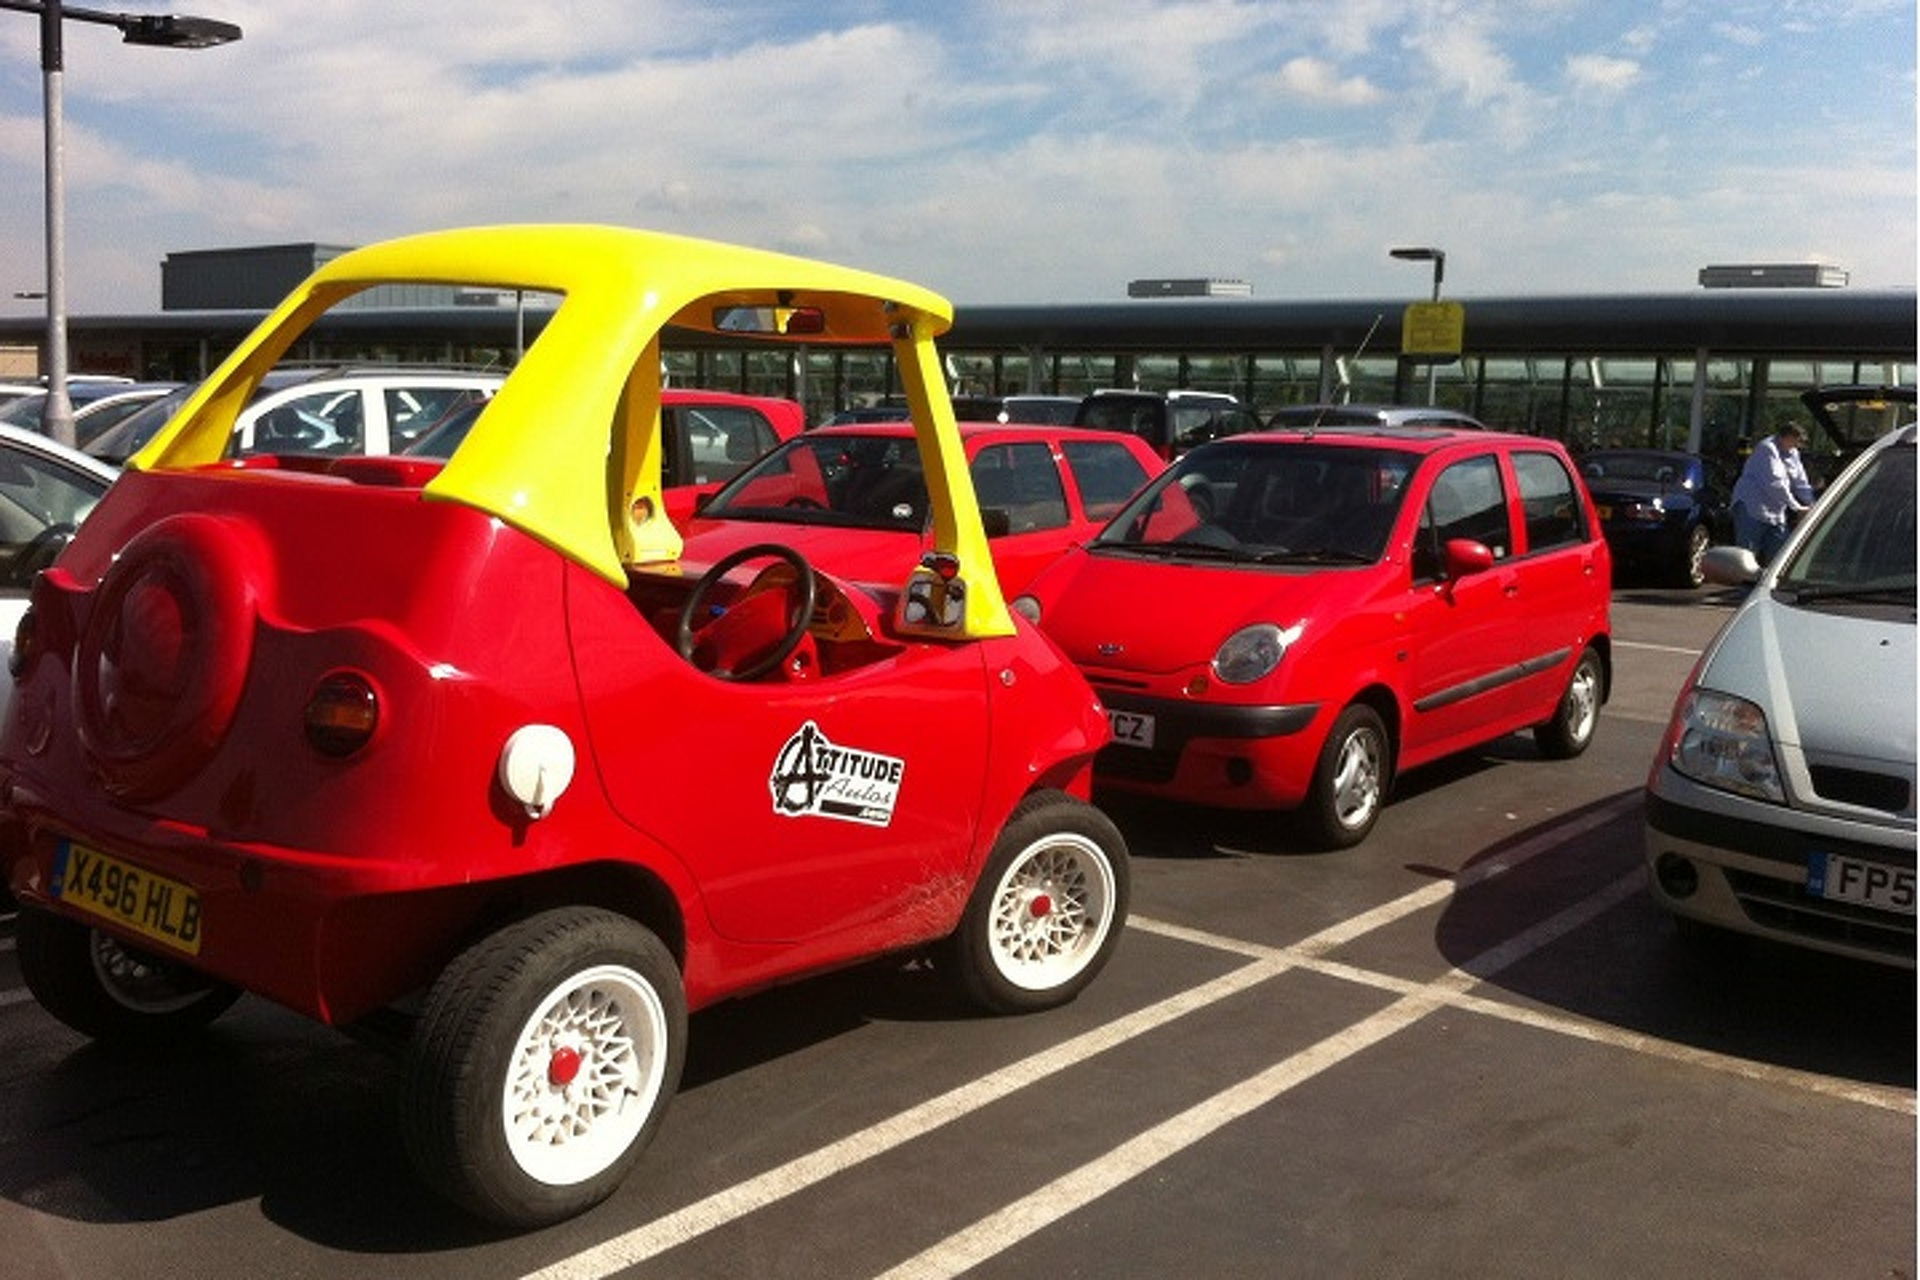 Your Childhood Is Telling You To Buy This Real-Life Cozy Coupe